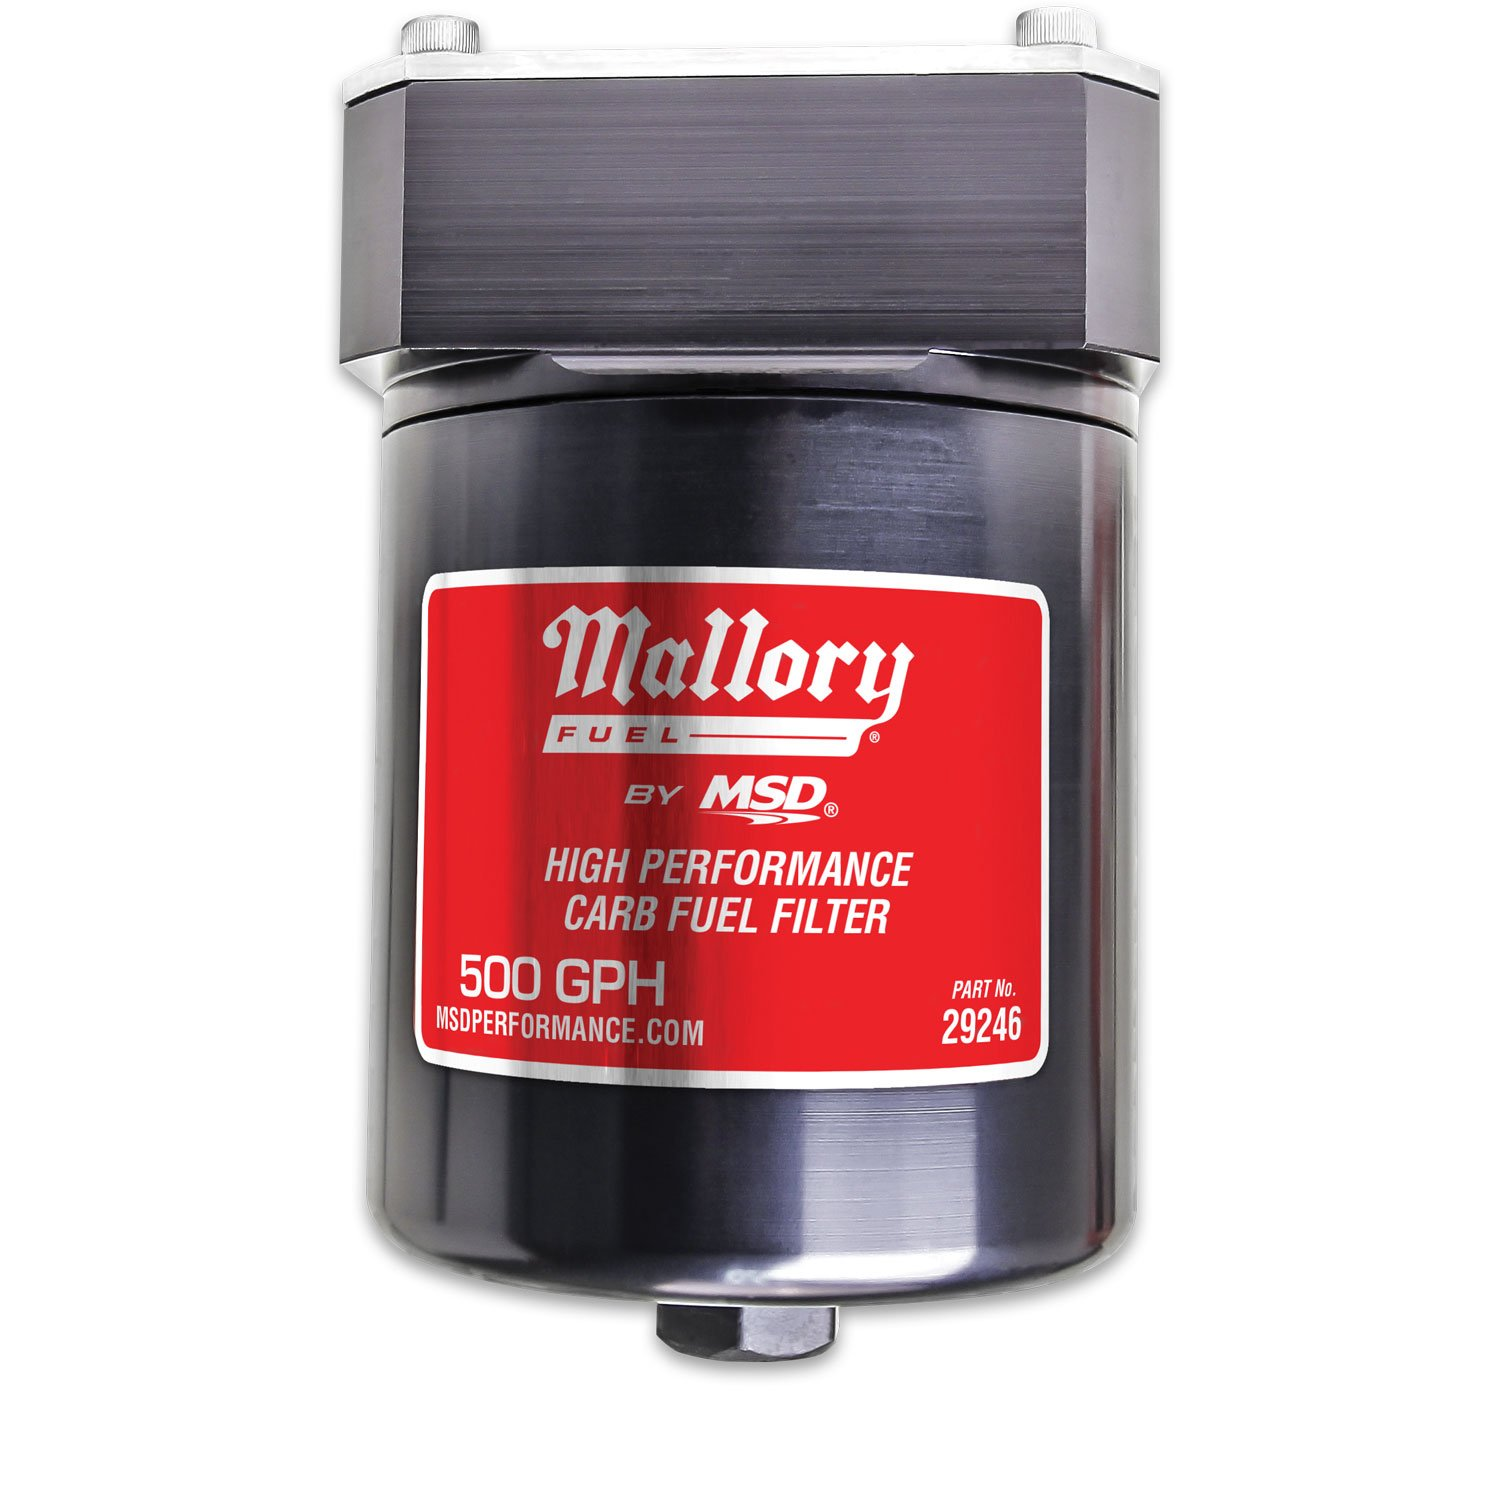 hight resolution of 29246 mallory high performance fuel filter image